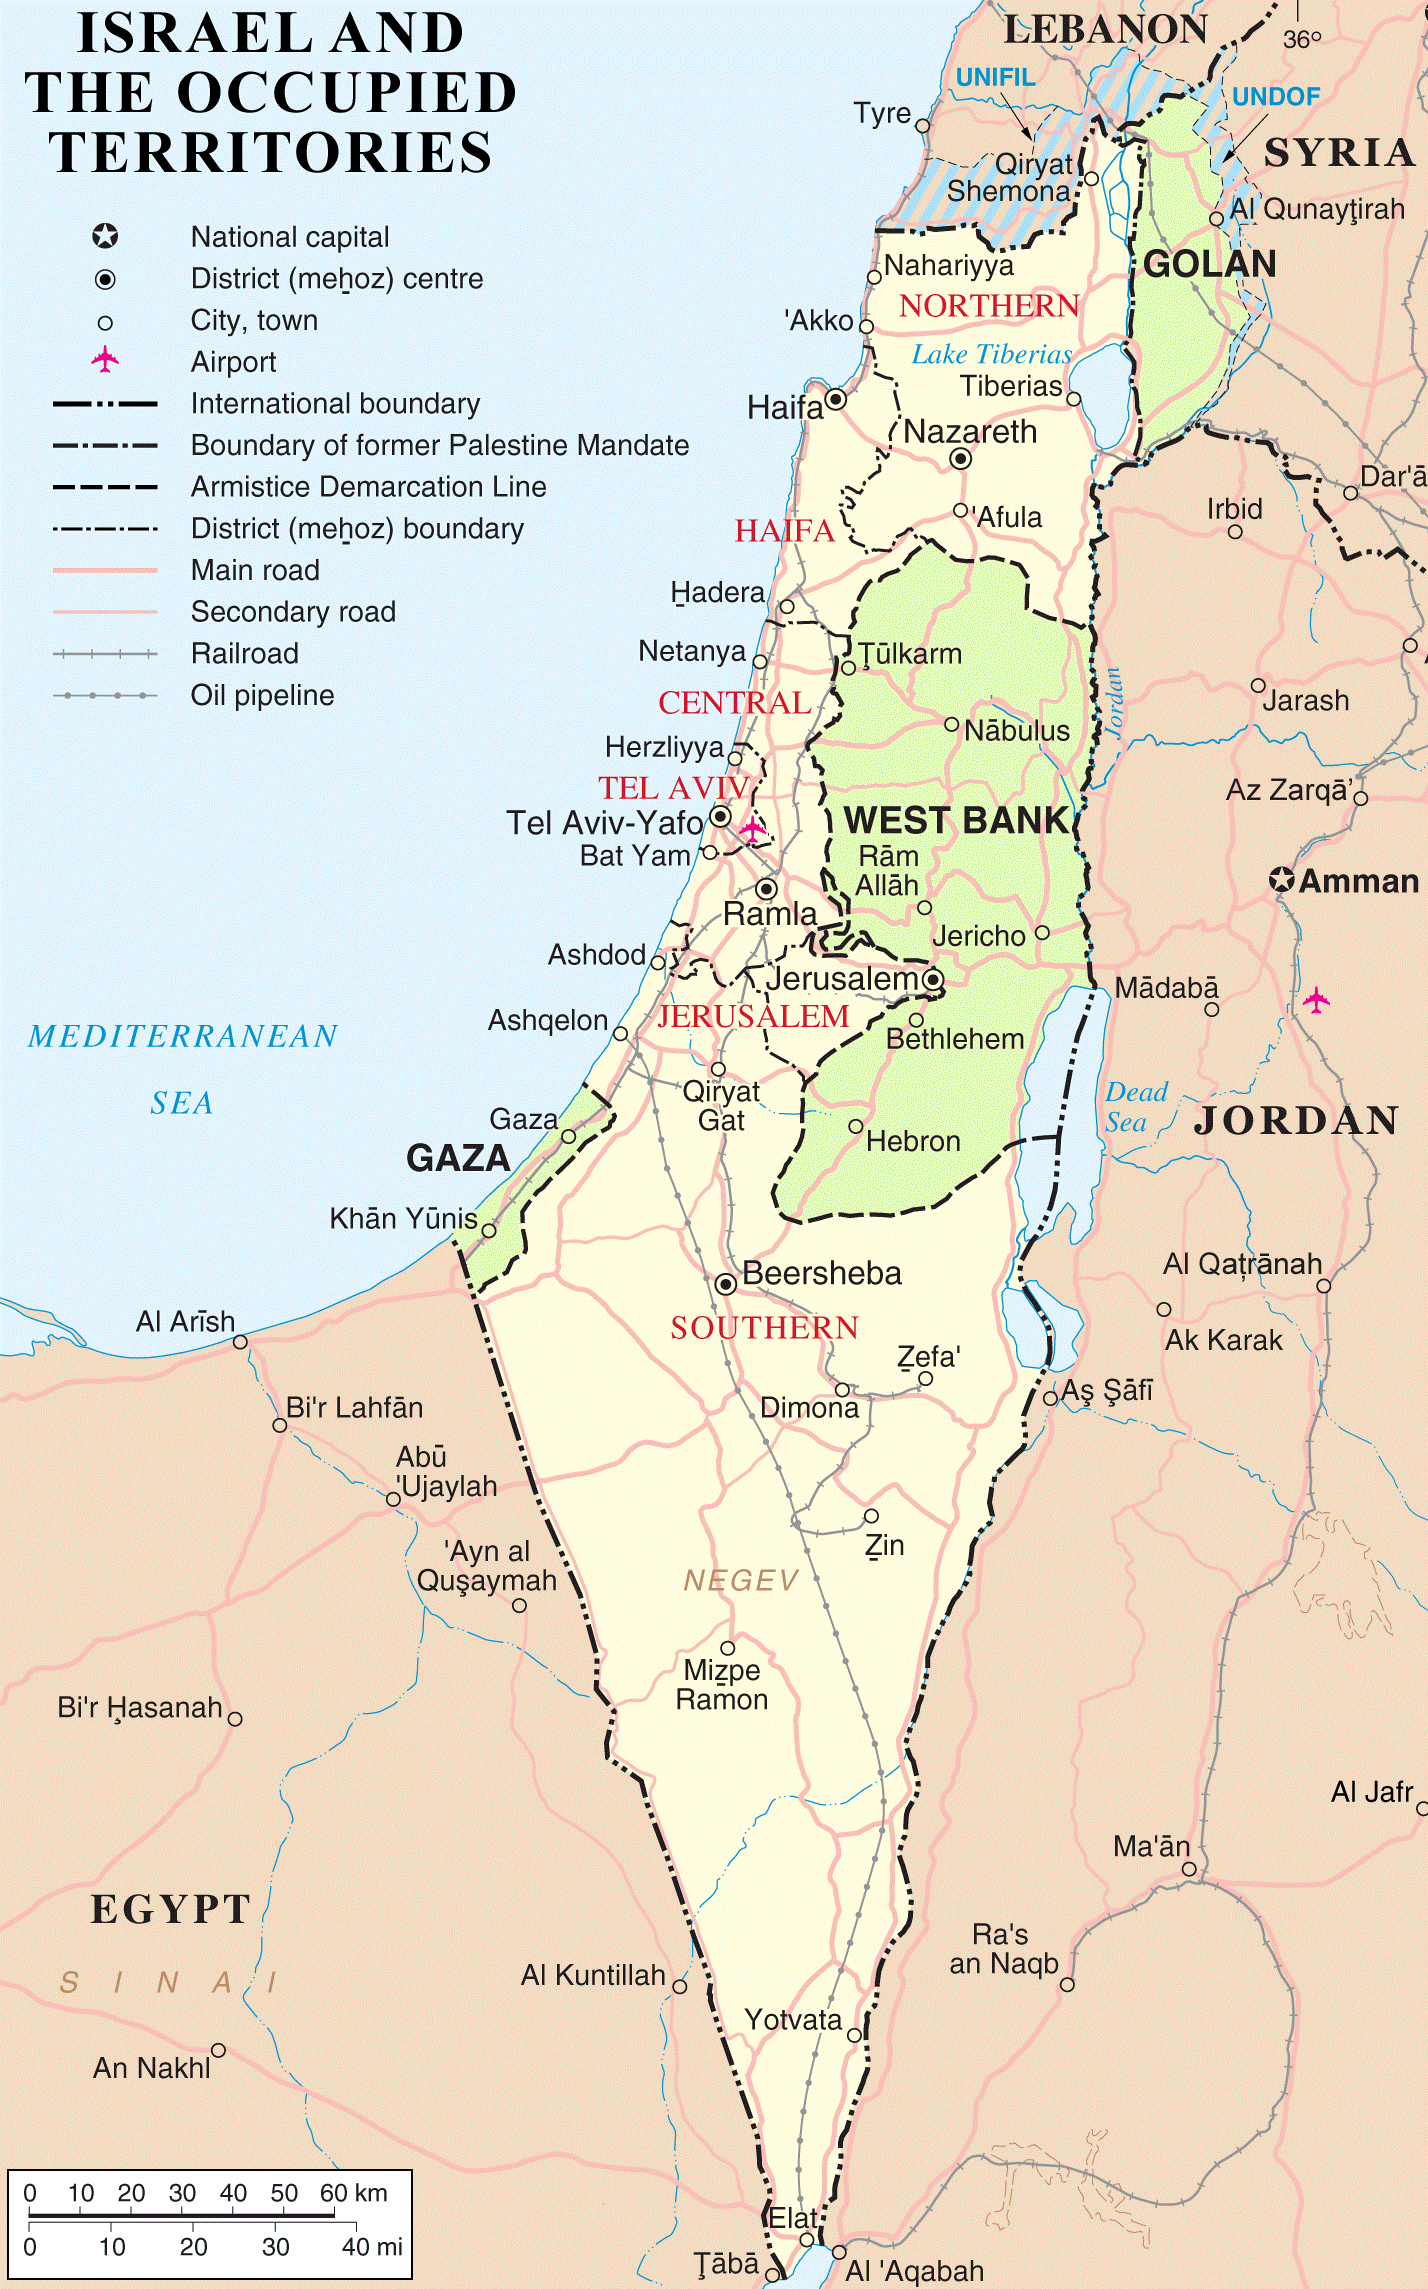 Figure Five: 'Israel and the Occupied Territories ', 1967. The World Post [online] [Accessed 16 July 2016] Available from World Wide Web :< http://www.huffingtonpost.com/ >